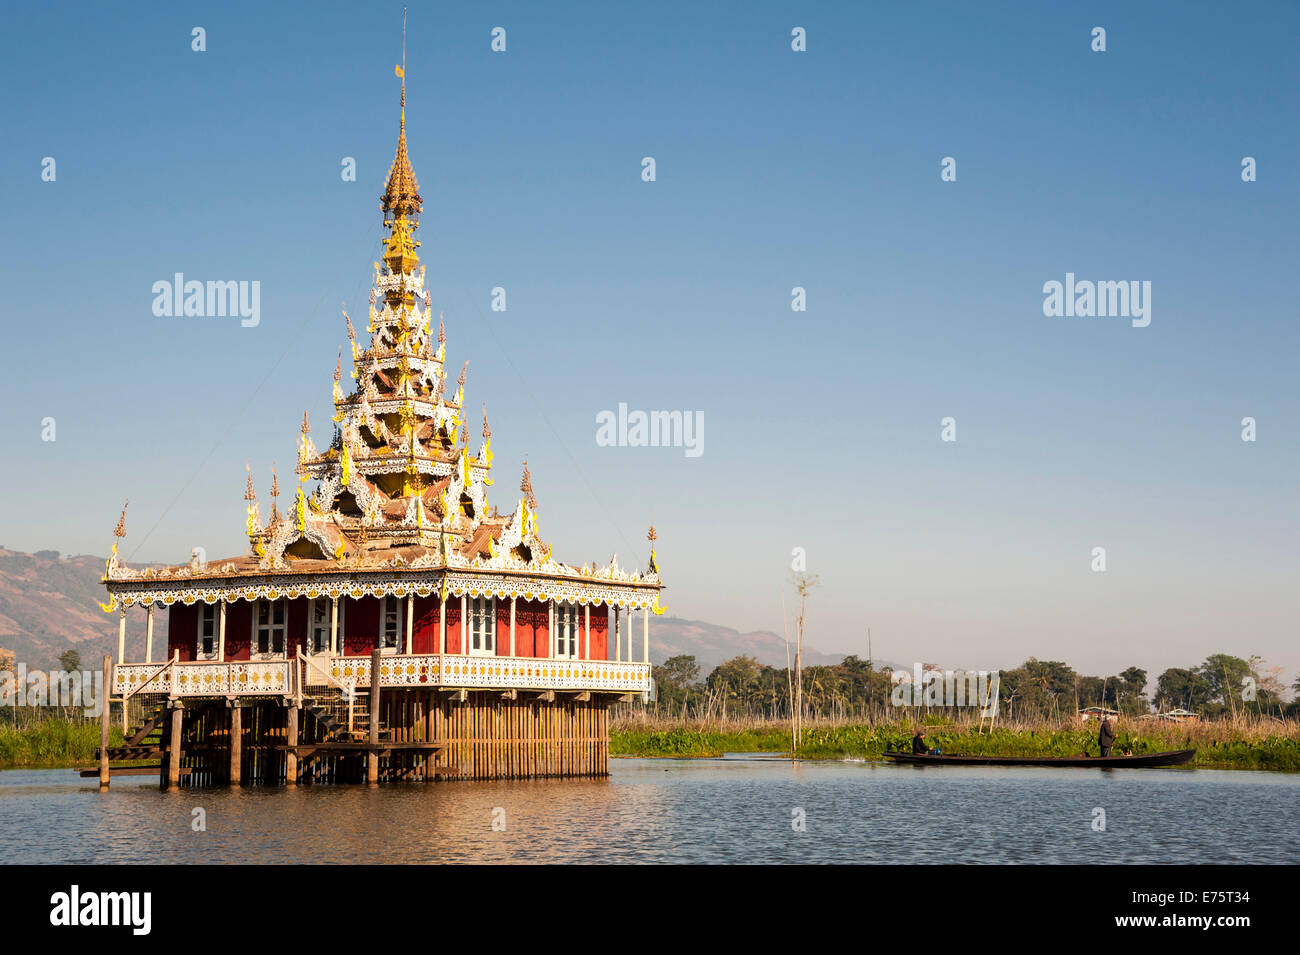 Temple in the water, Inle Lake, Shan State, Myanmar - Stock Image